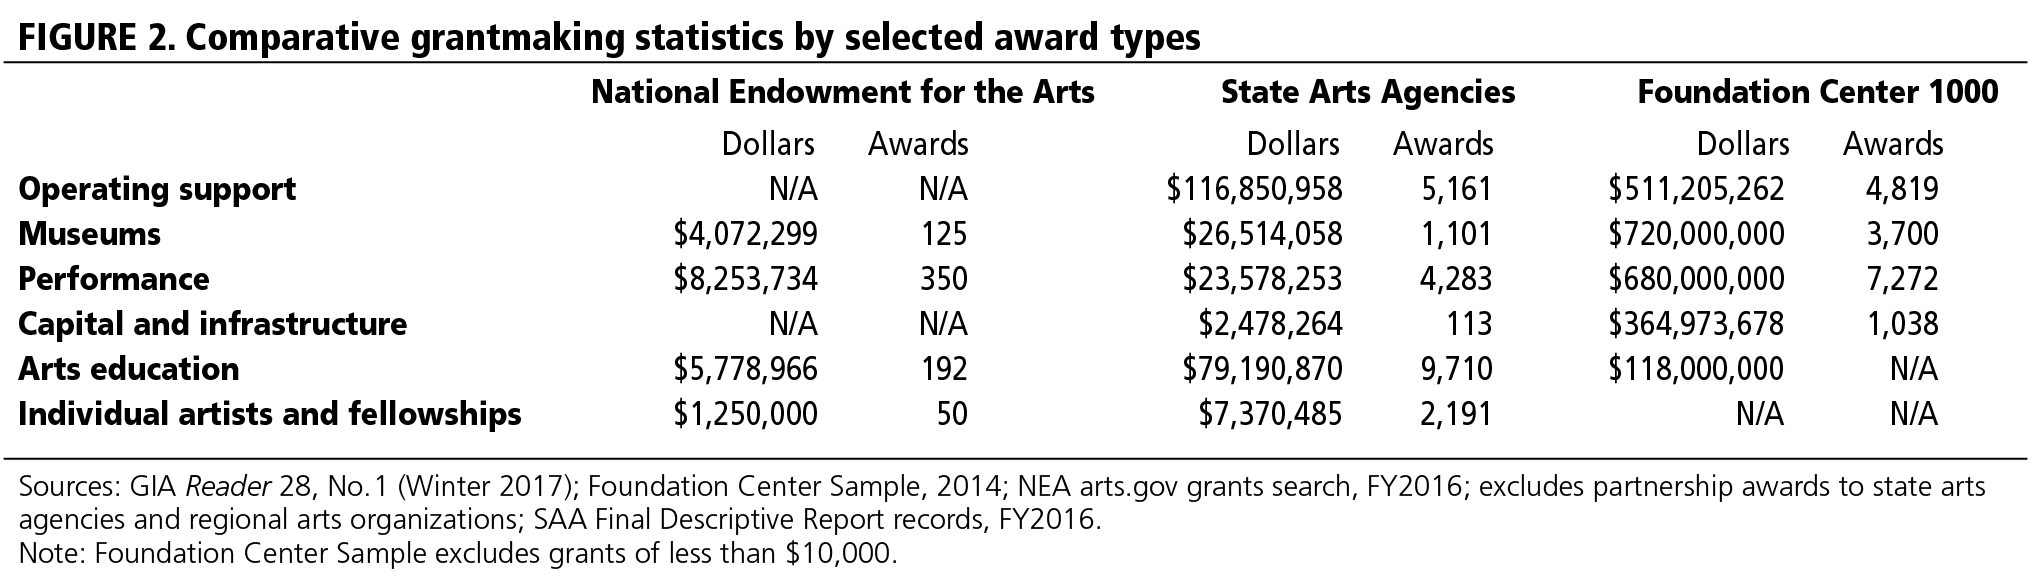 FIGURE 2. Comparative grantmaking statistics by selected award types